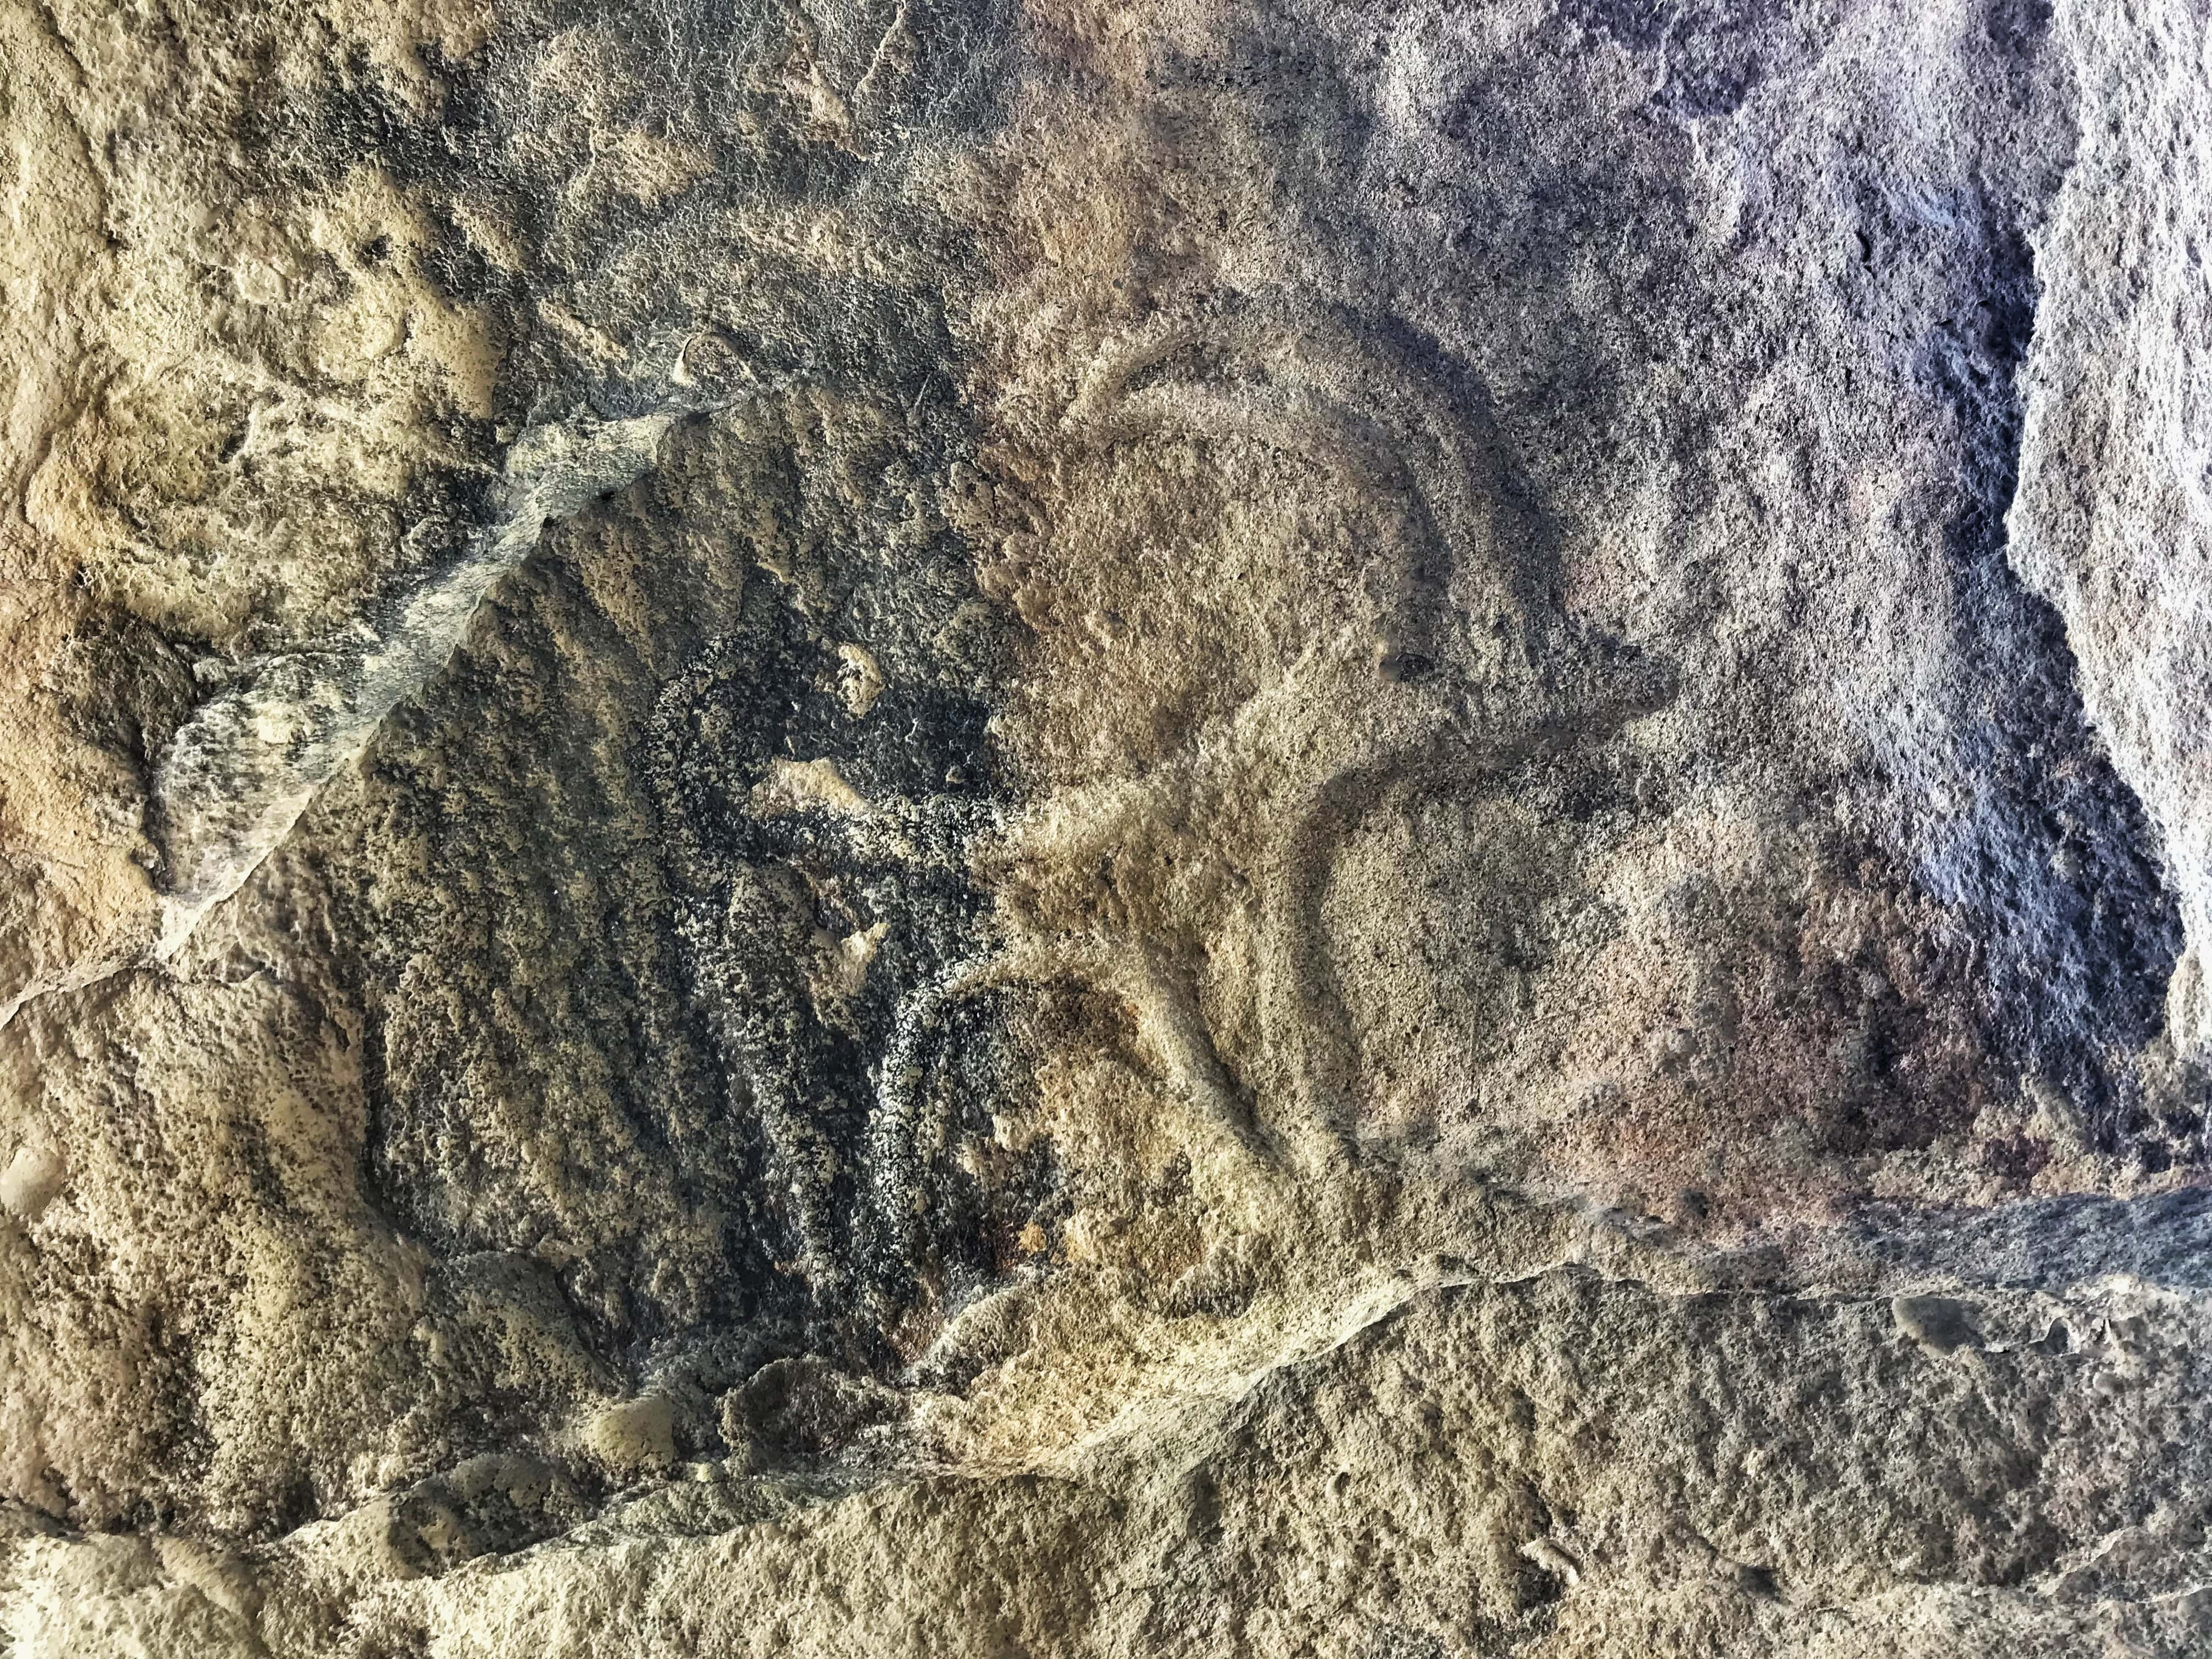 or just animals. These rock carvings date are nearly 5,000-20,000 years old!